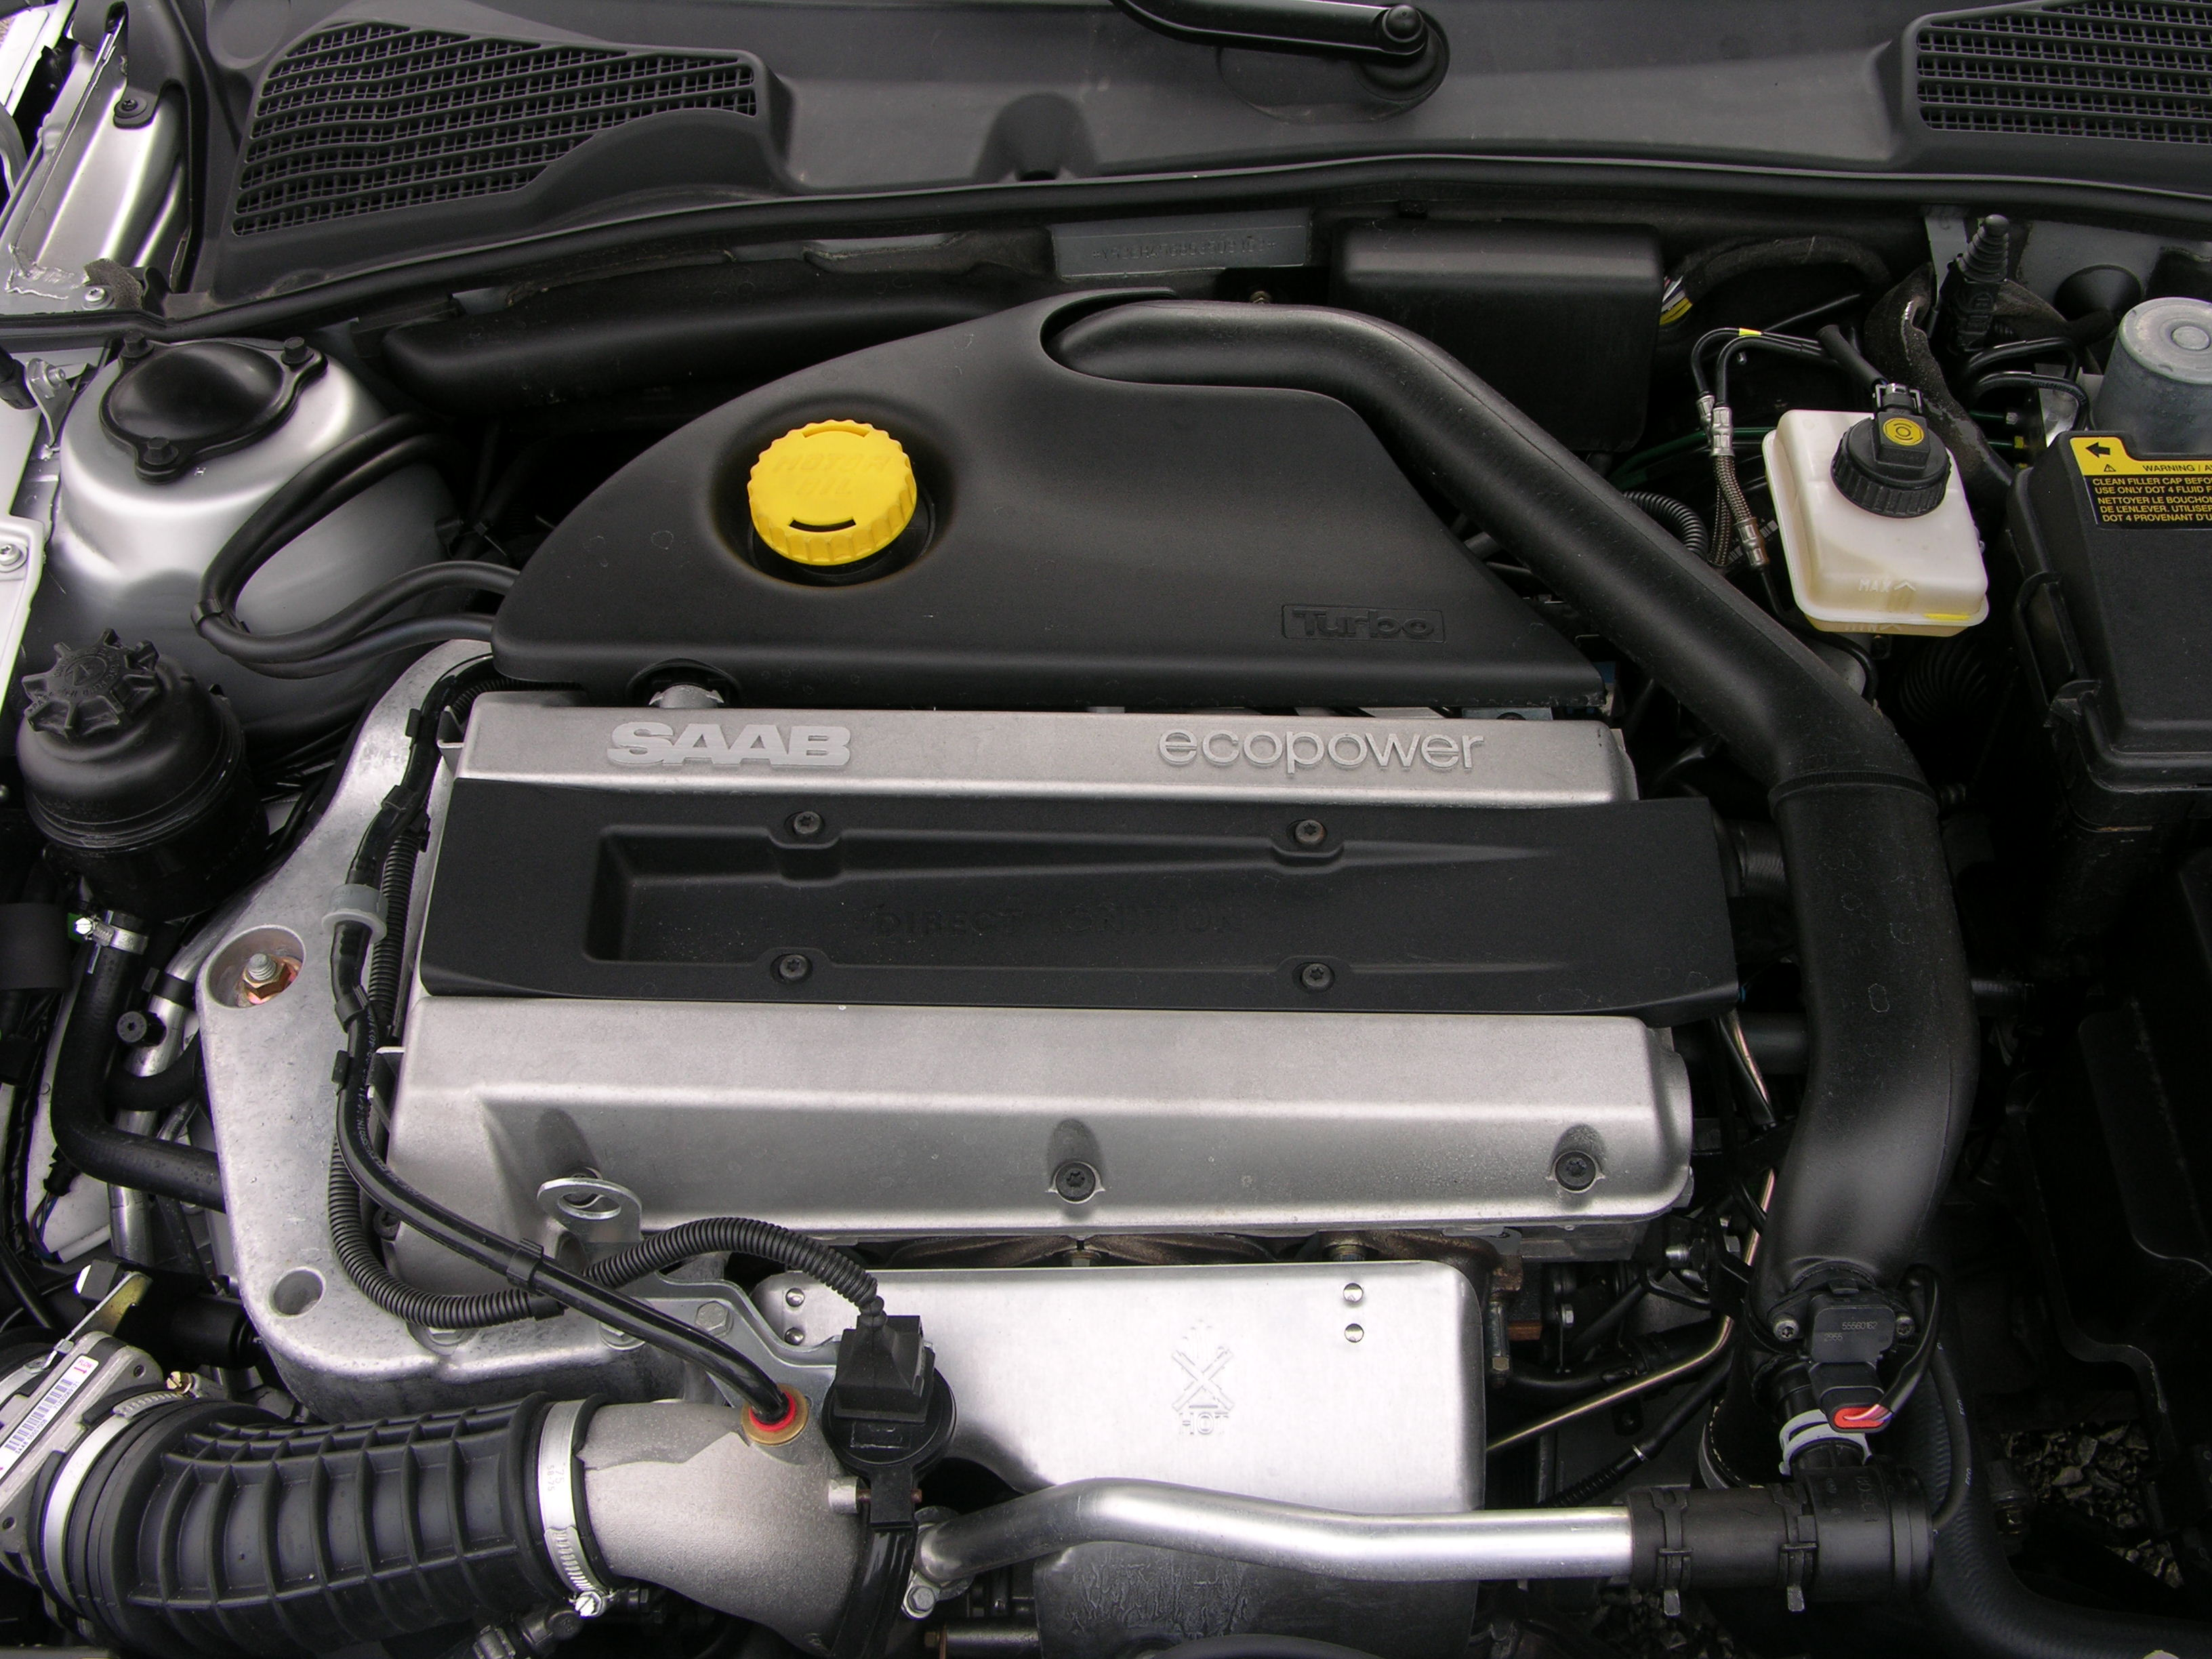 2000 Porsche Boxster Engine Diagram Control Wiring Saab 9 3 Radiator Free Image For